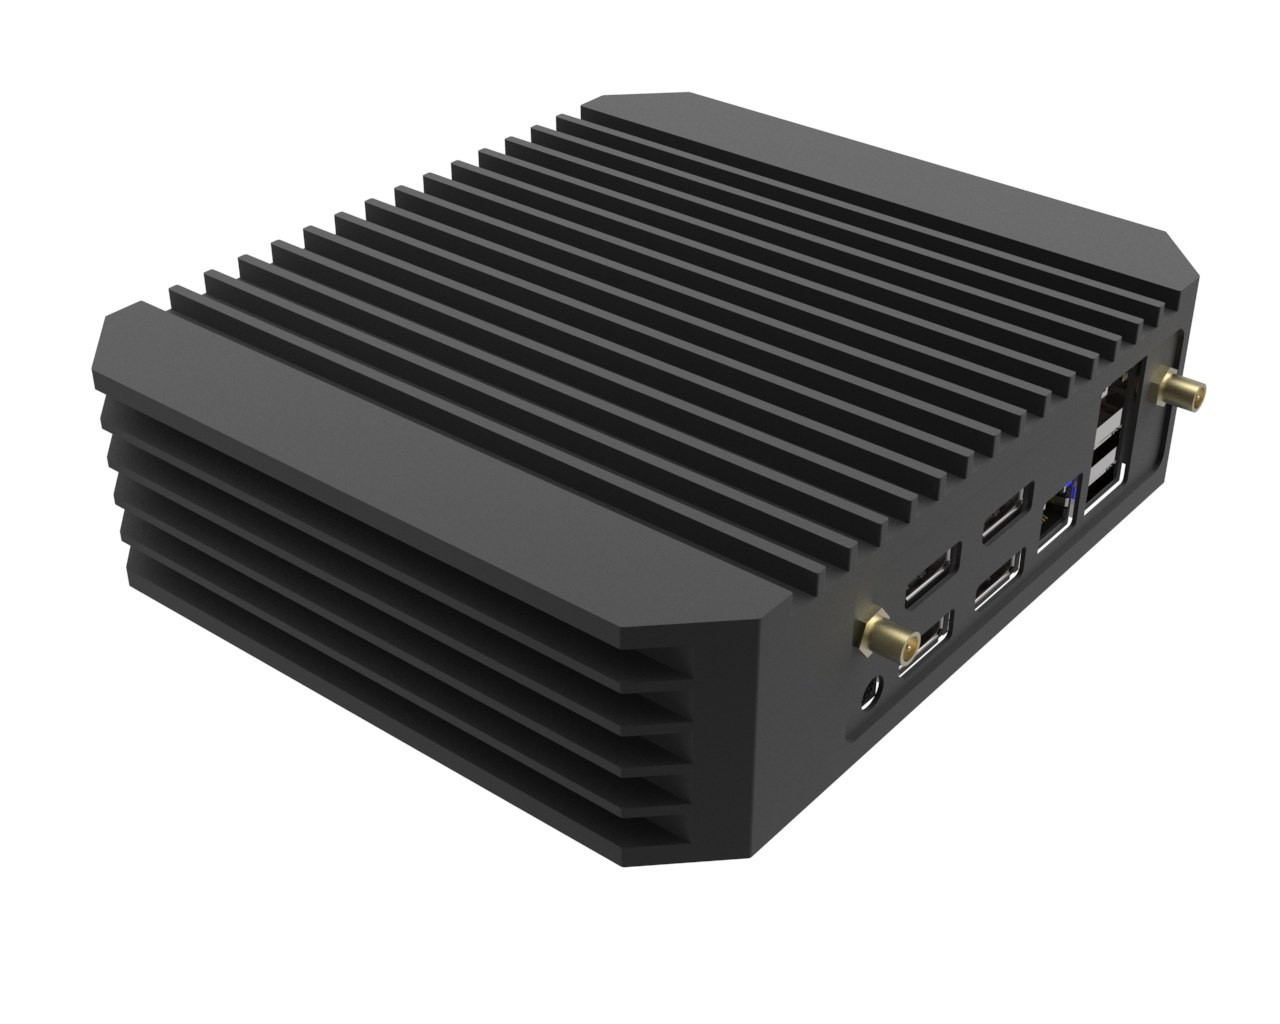 Tranquil PC's AMD Ryzen Embedded Mini PC Supports Up to 4 Displays